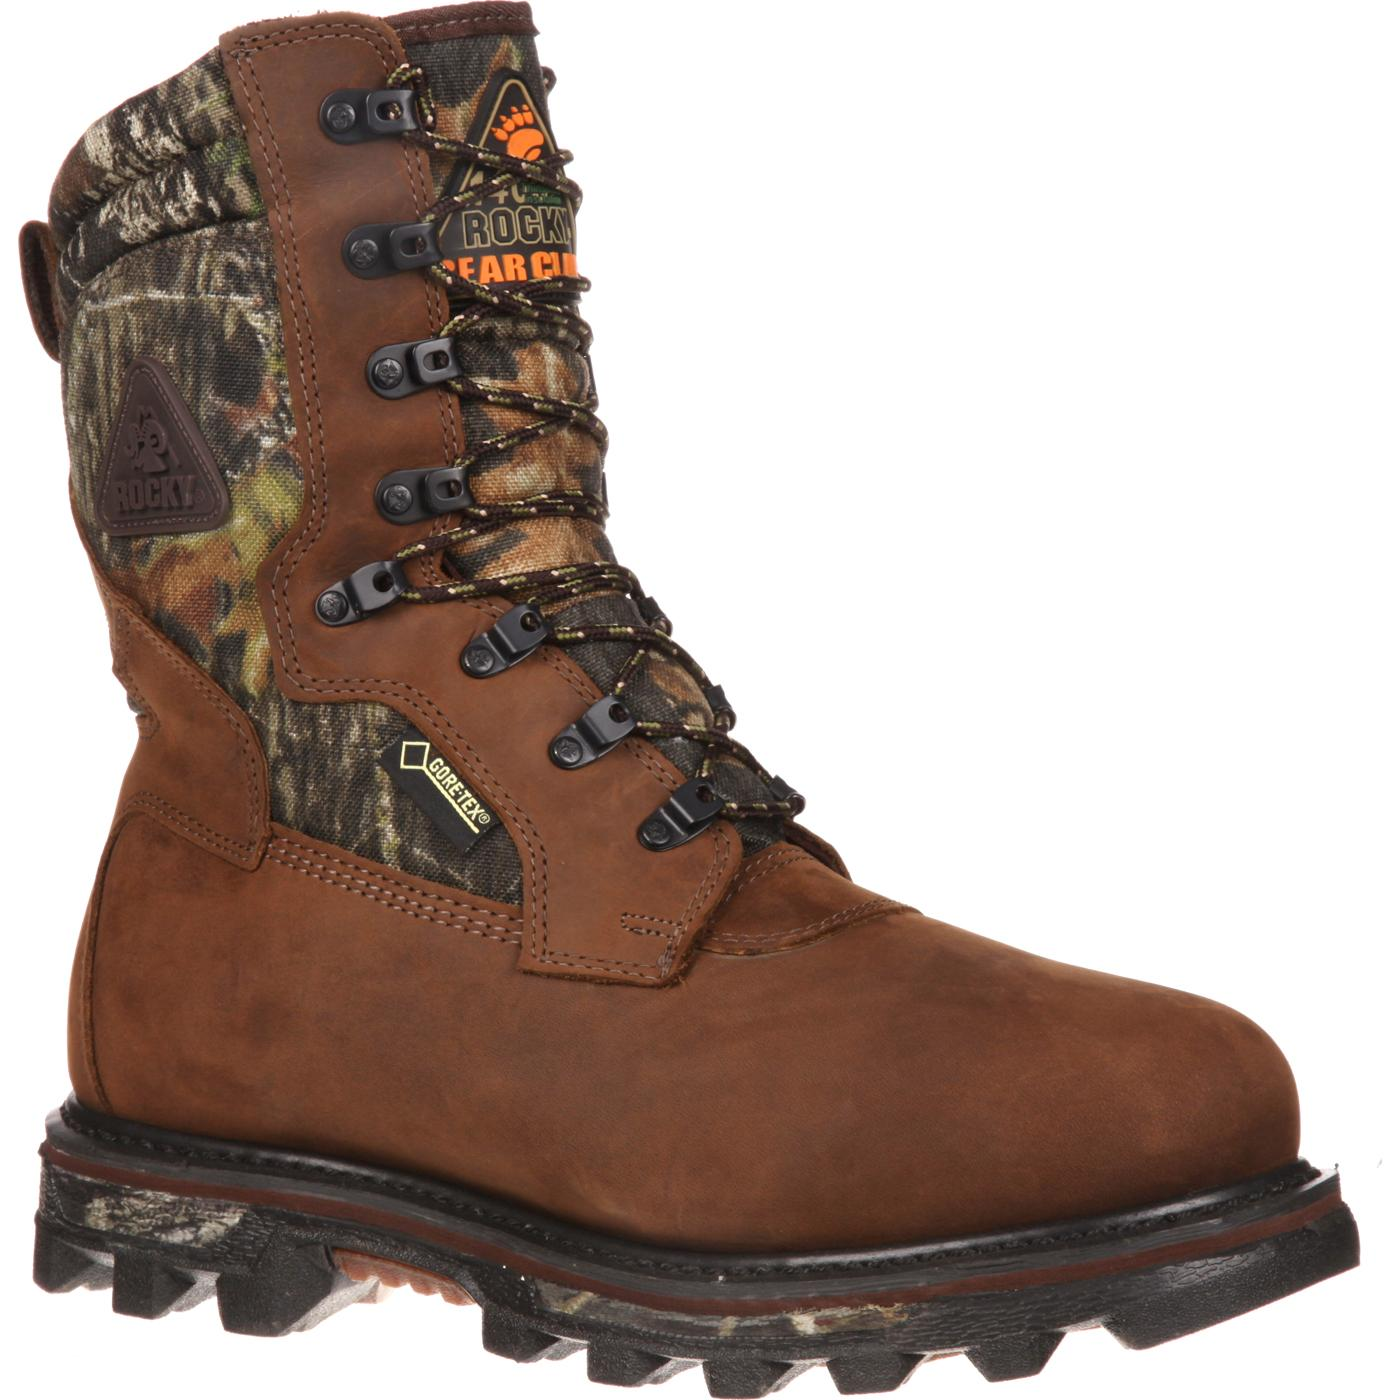 Rocky Arctic Gore Tex Waterproof Insulated Camo Boots